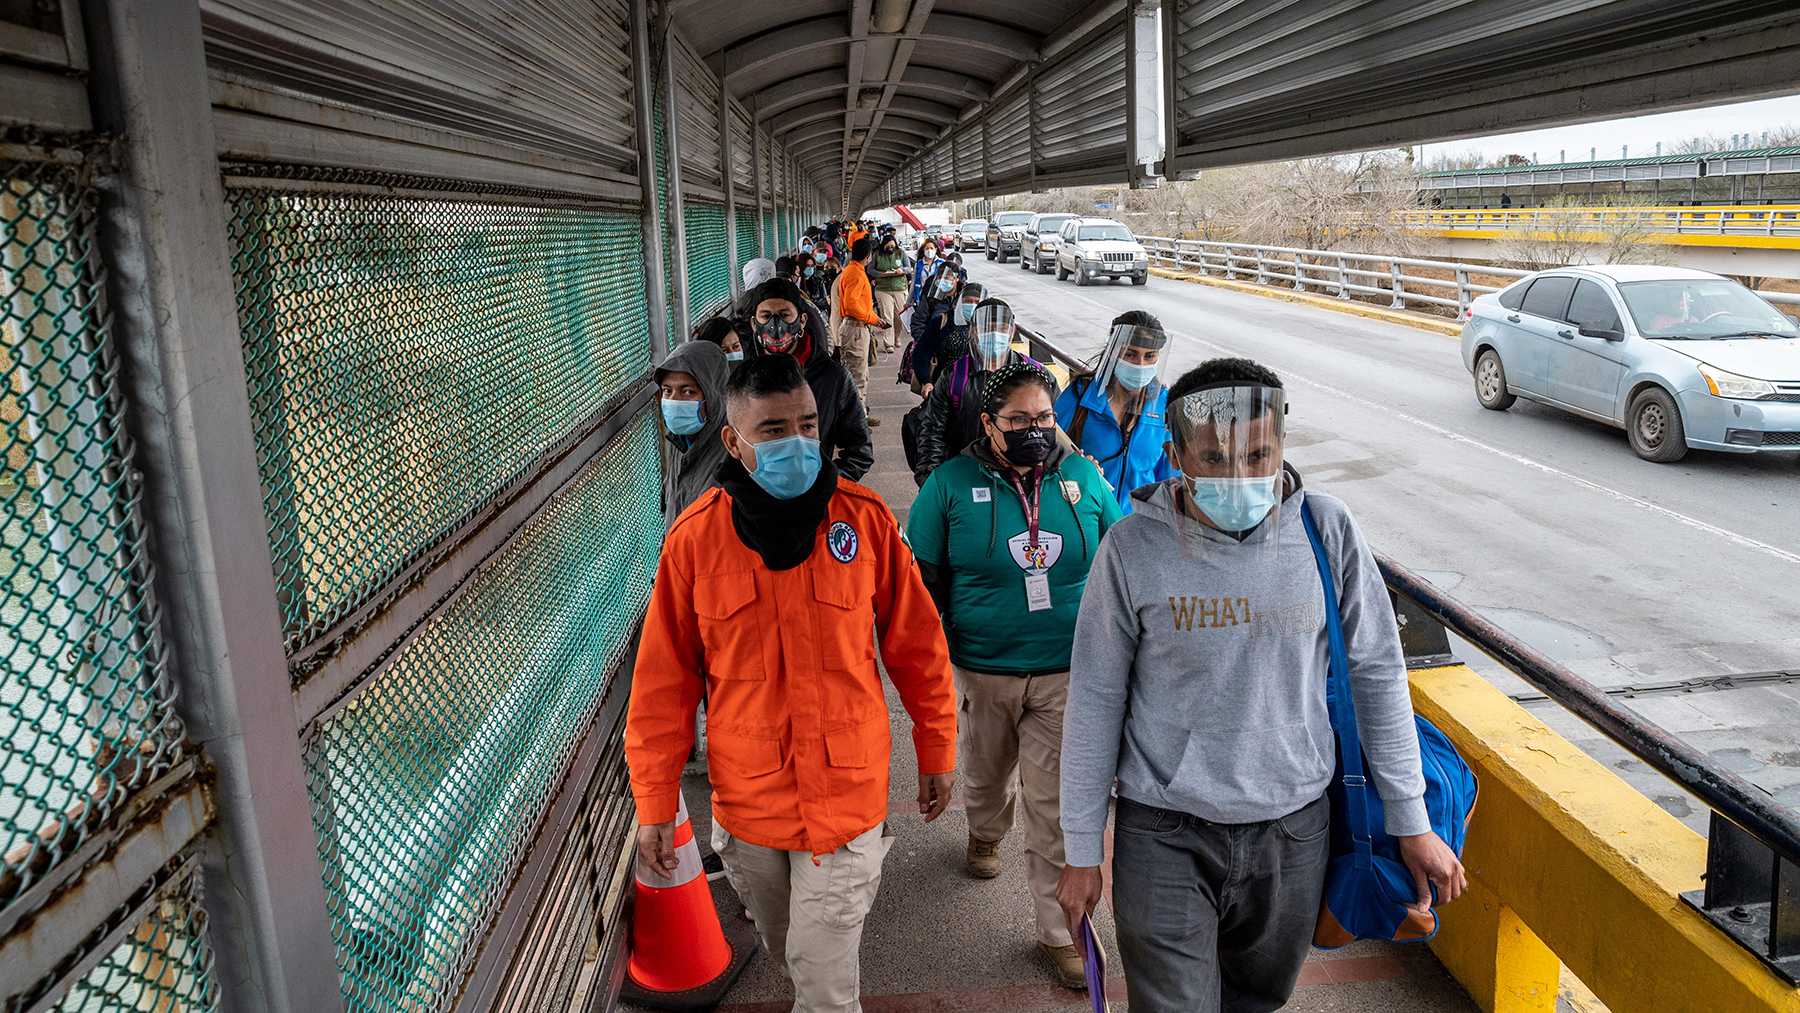 Health providers on the U.S./Mexico border are working to treat health concerns of people who have recently arrived in the country. (Photo by Sergio FLORES / AFP)